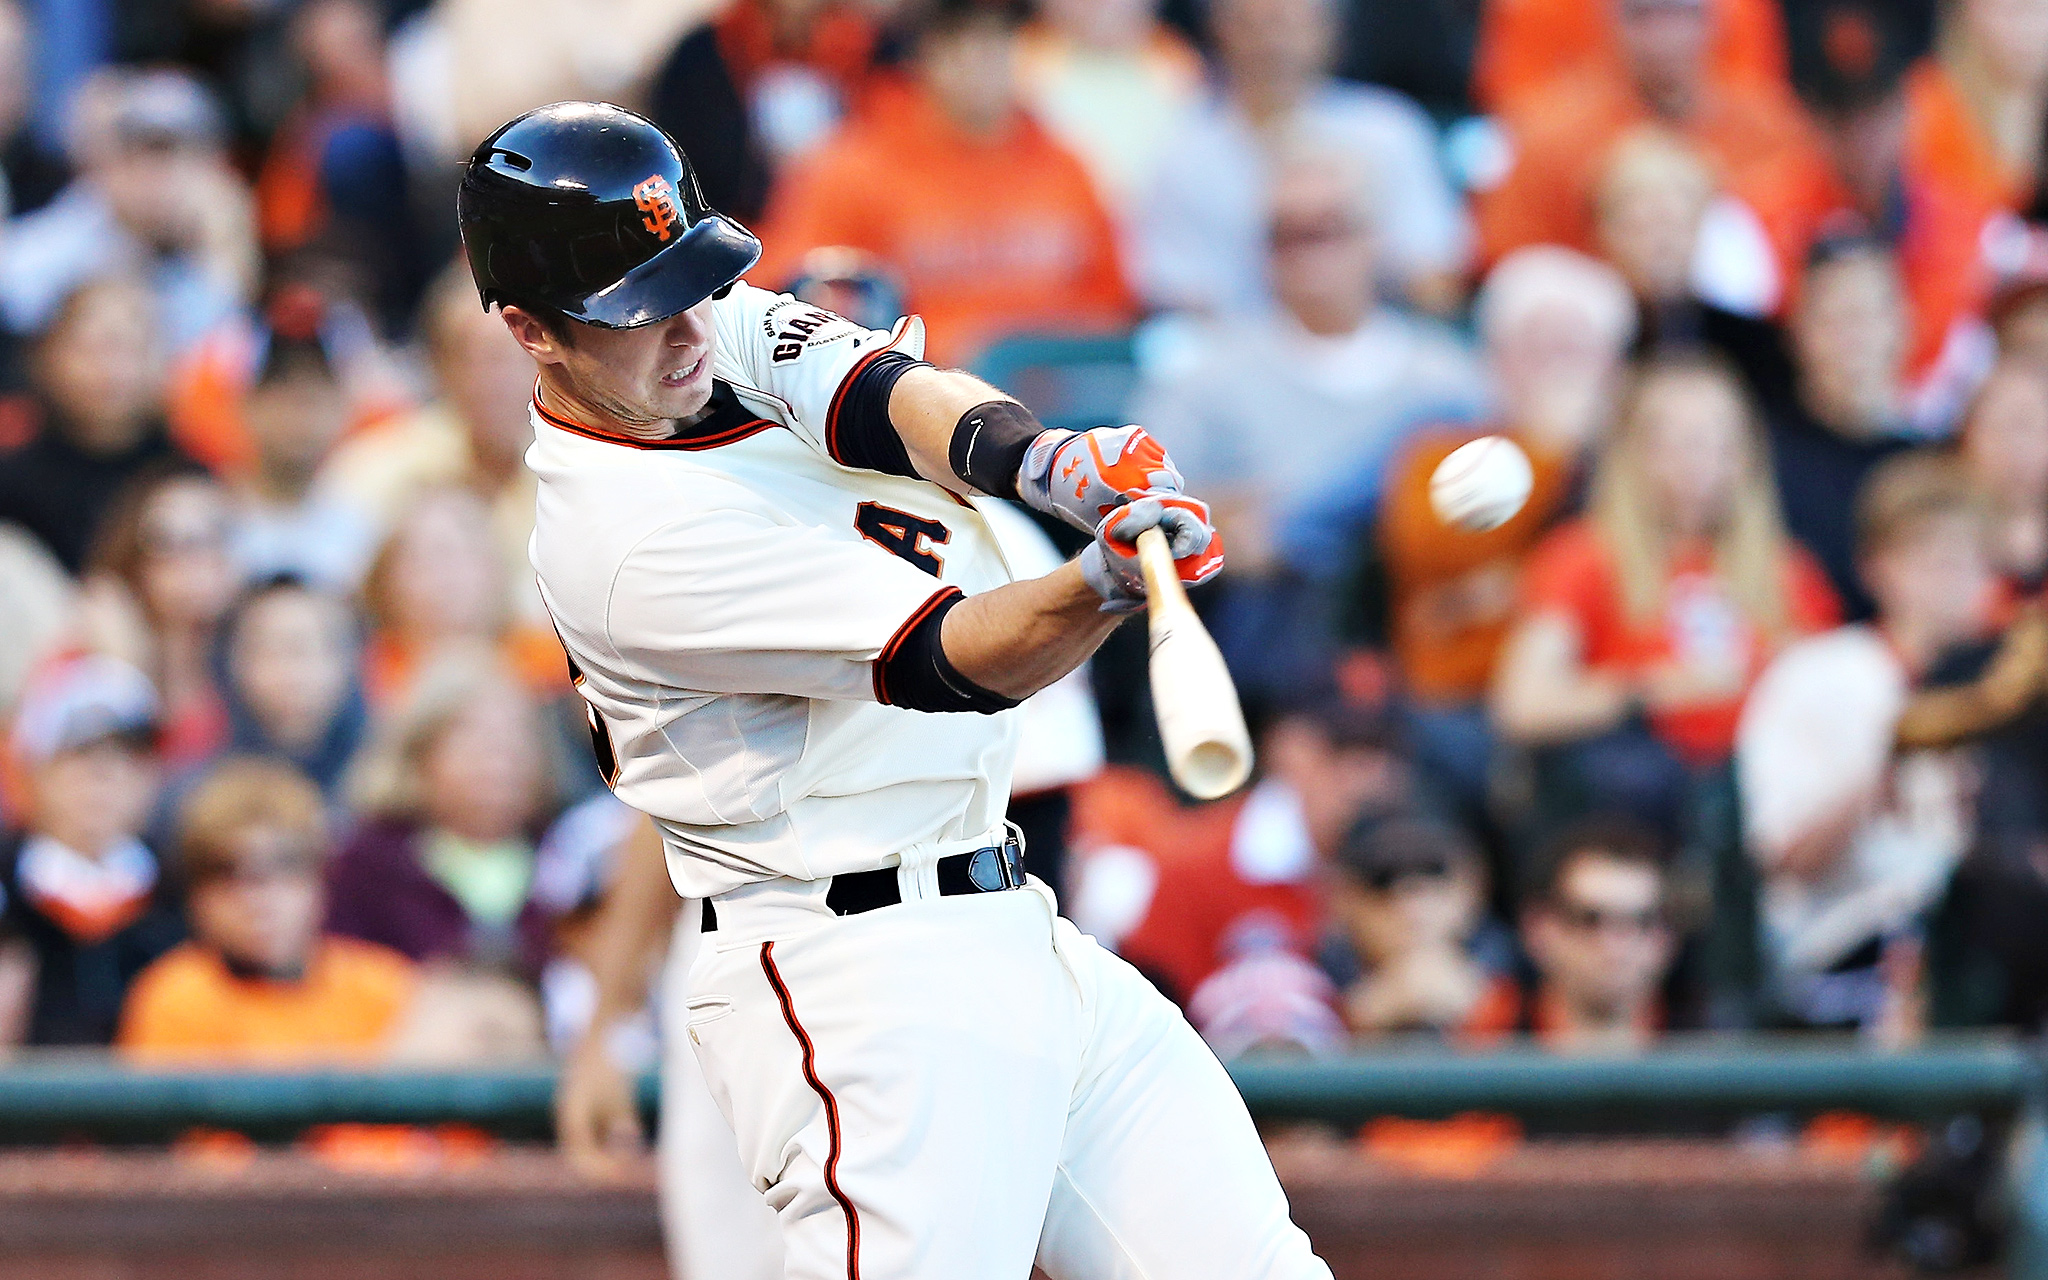 Best Plate Discipline: Buster Posey